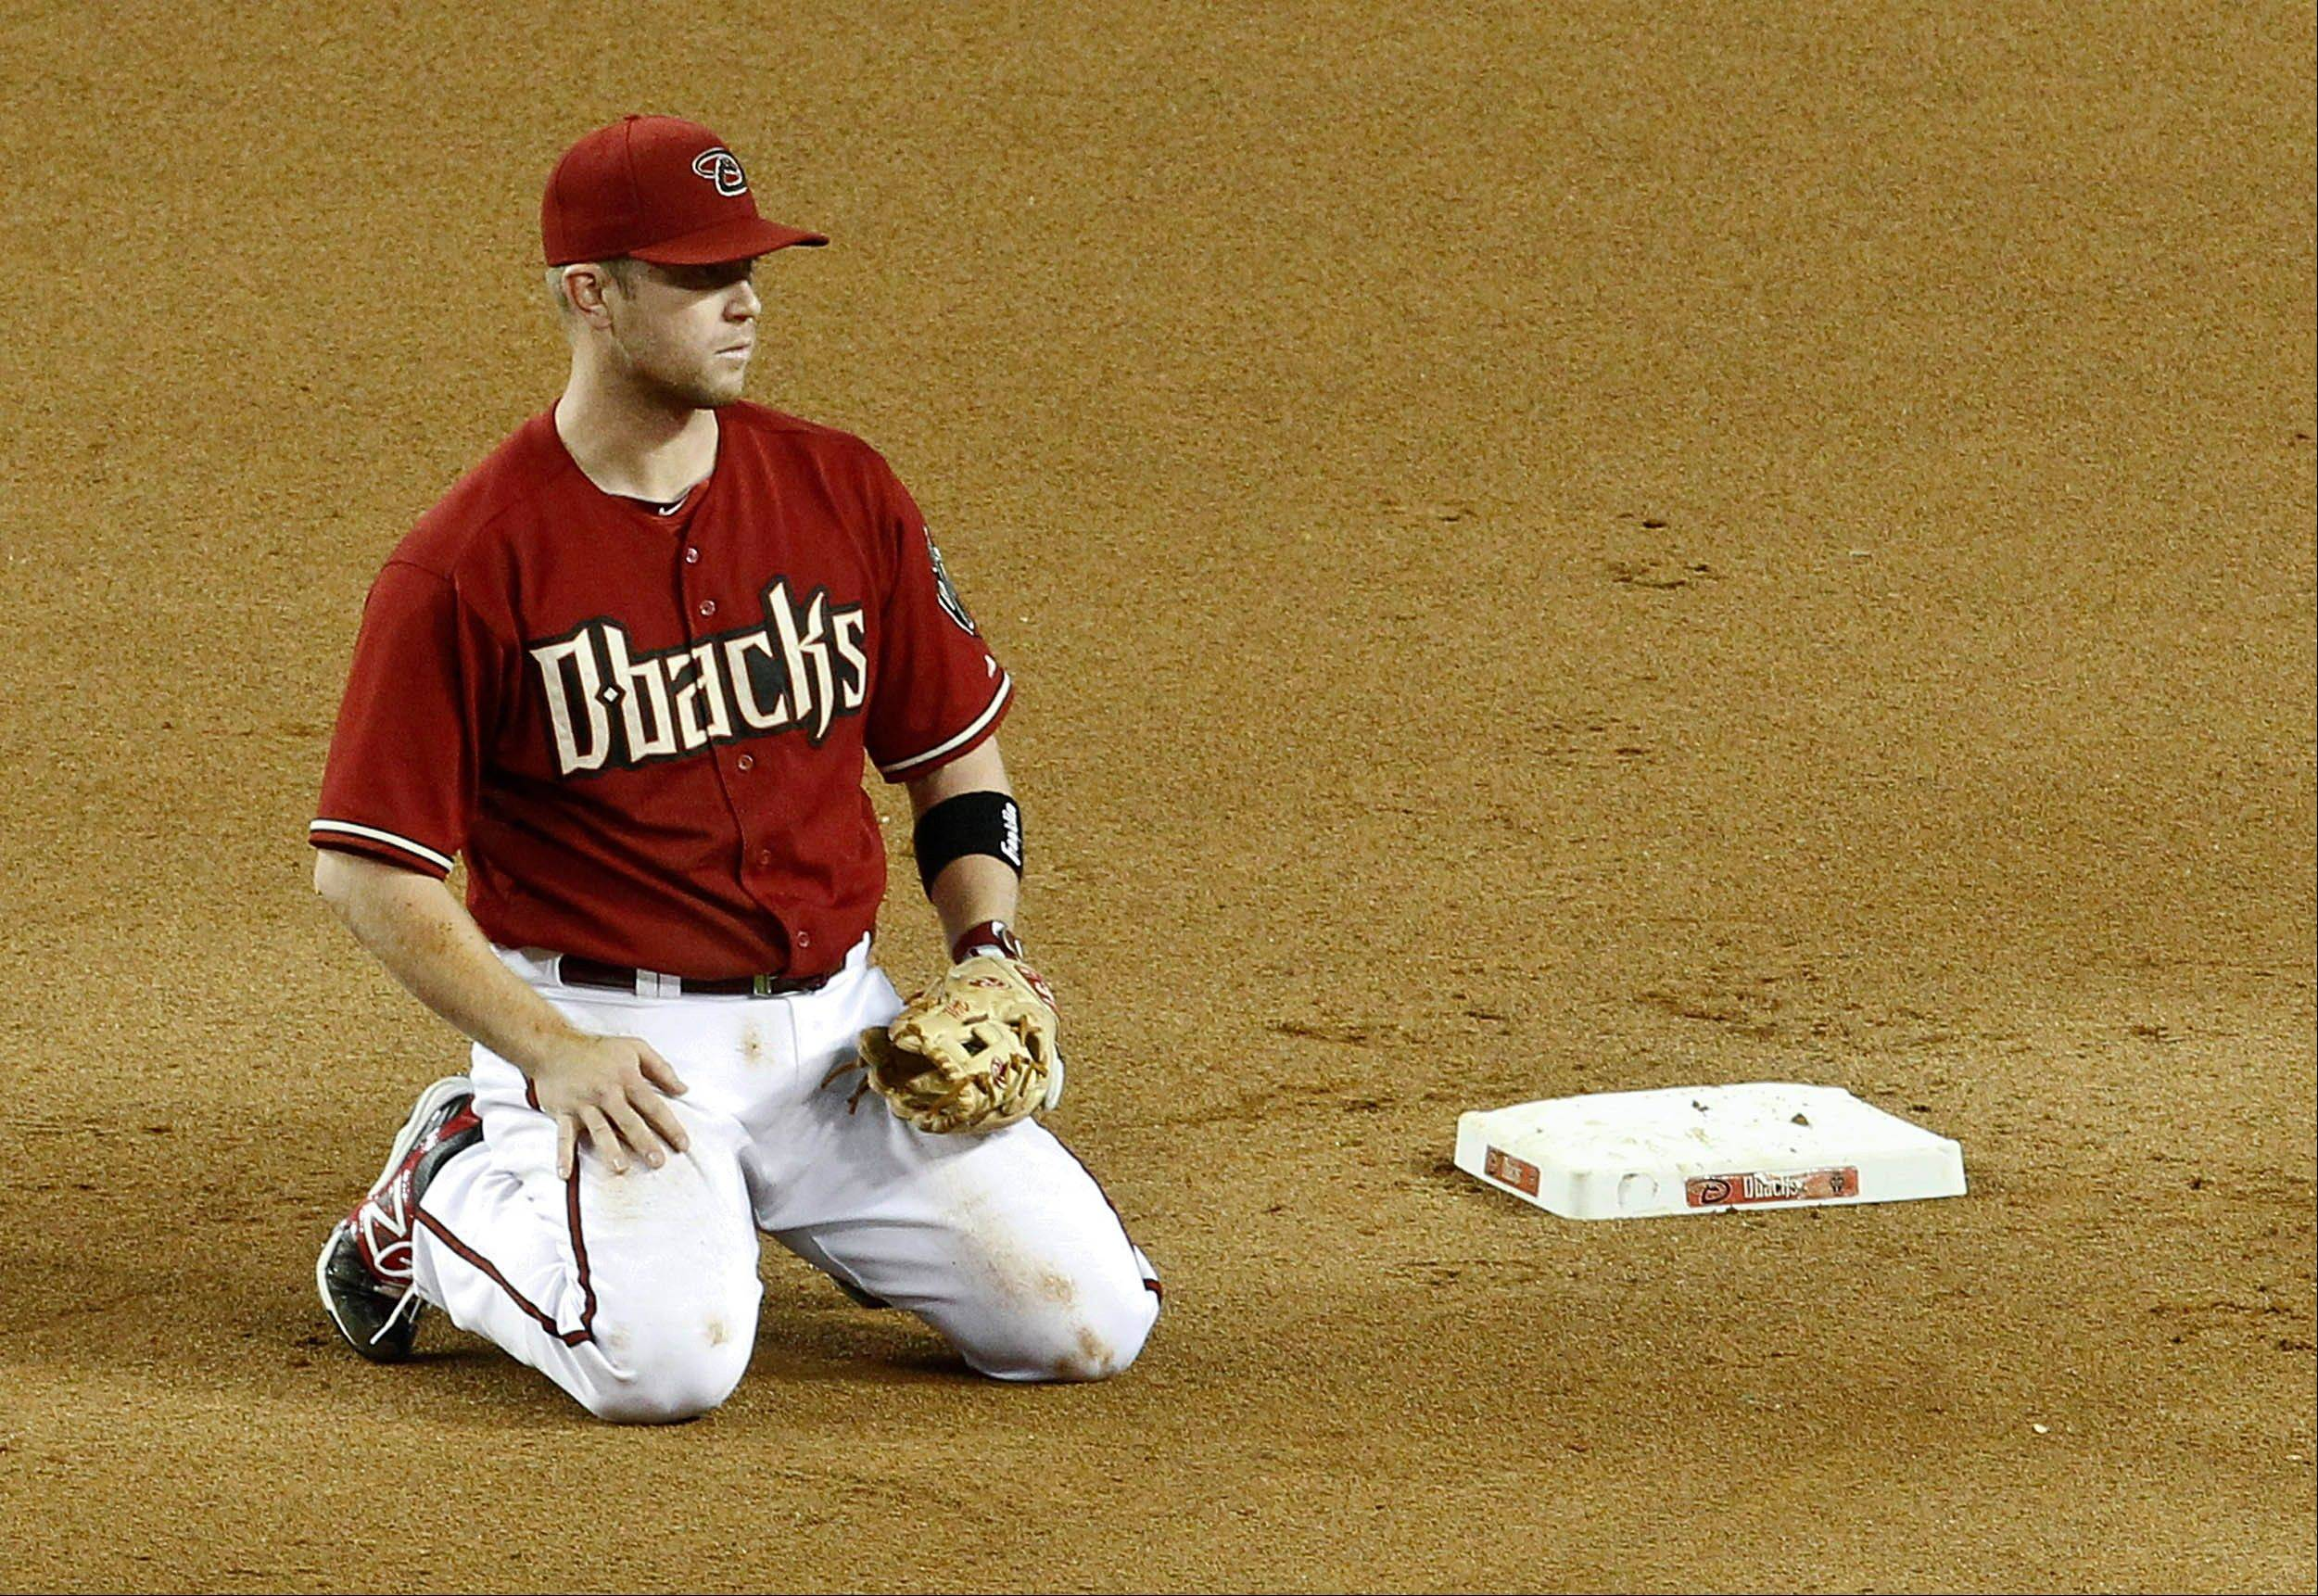 Arizona's Aaron Hill kneels after teammate Chris Johnson threw wildly to him at second base, resulting in an error for Johnson and a run for the Colorado Rockies on Wednesday in Phoenix.